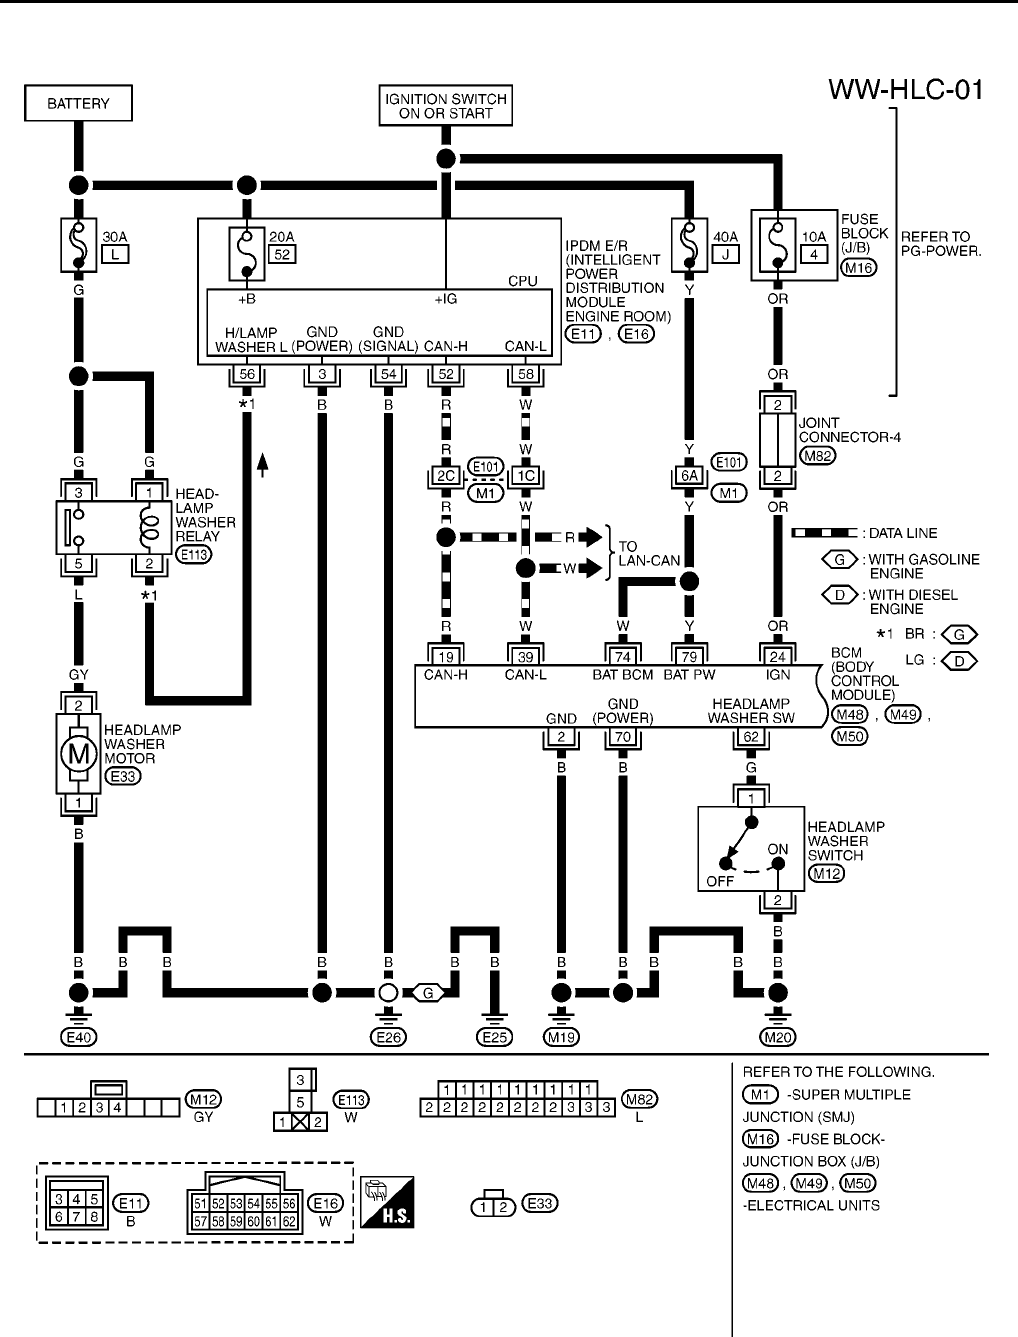 Nissan wiring diagram pdf find wiring diagram nissan micra wiring diagrams 2003 2005 36 pdf rh manuals co nissan caravan wiring diagram pdf cheapraybanclubmaster